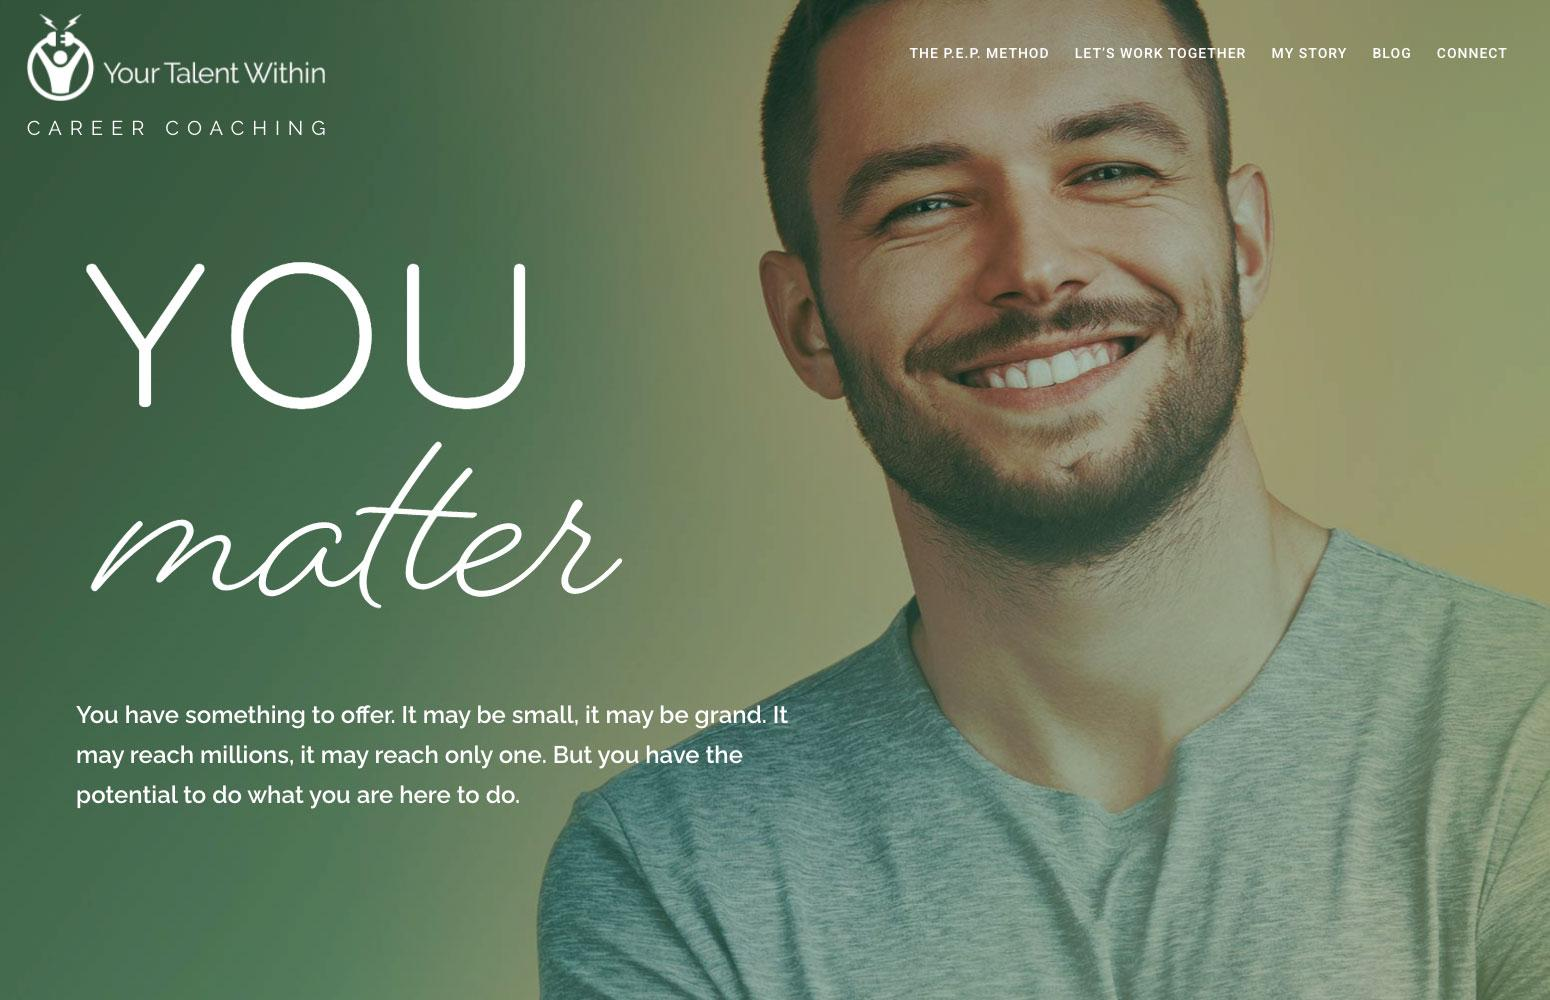 your-talent-within-wordpress-website-smiling-man